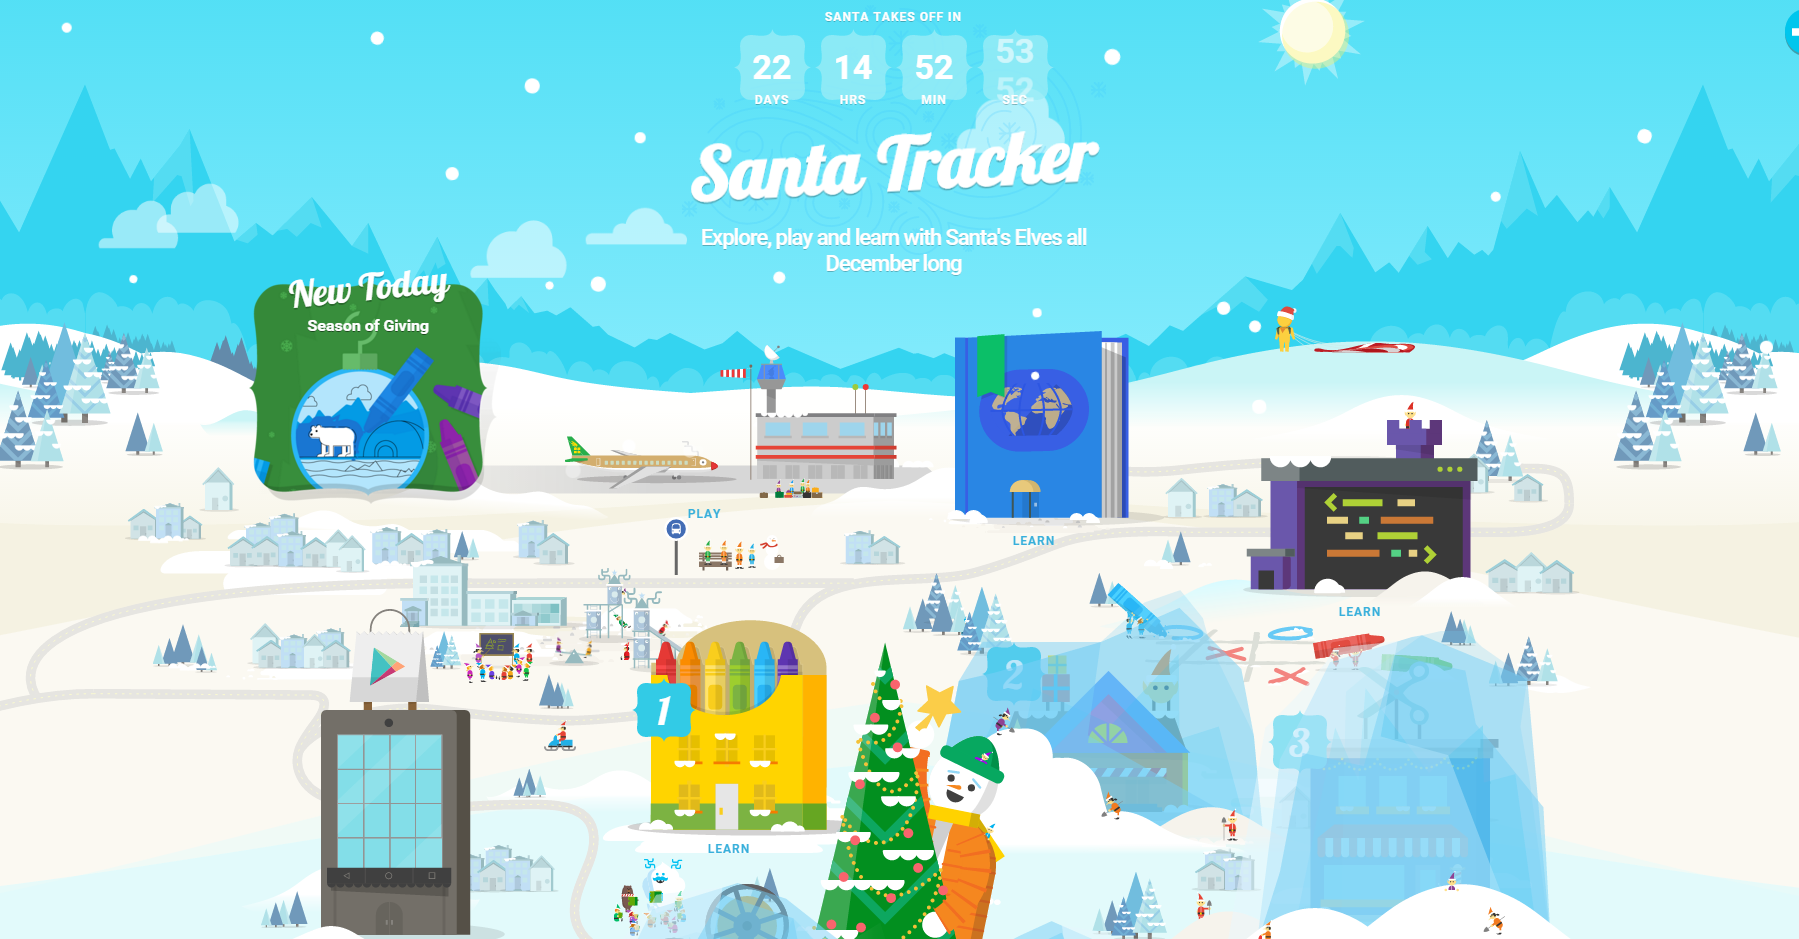 google reboots the santa tracker for christmas 2015 with fun games